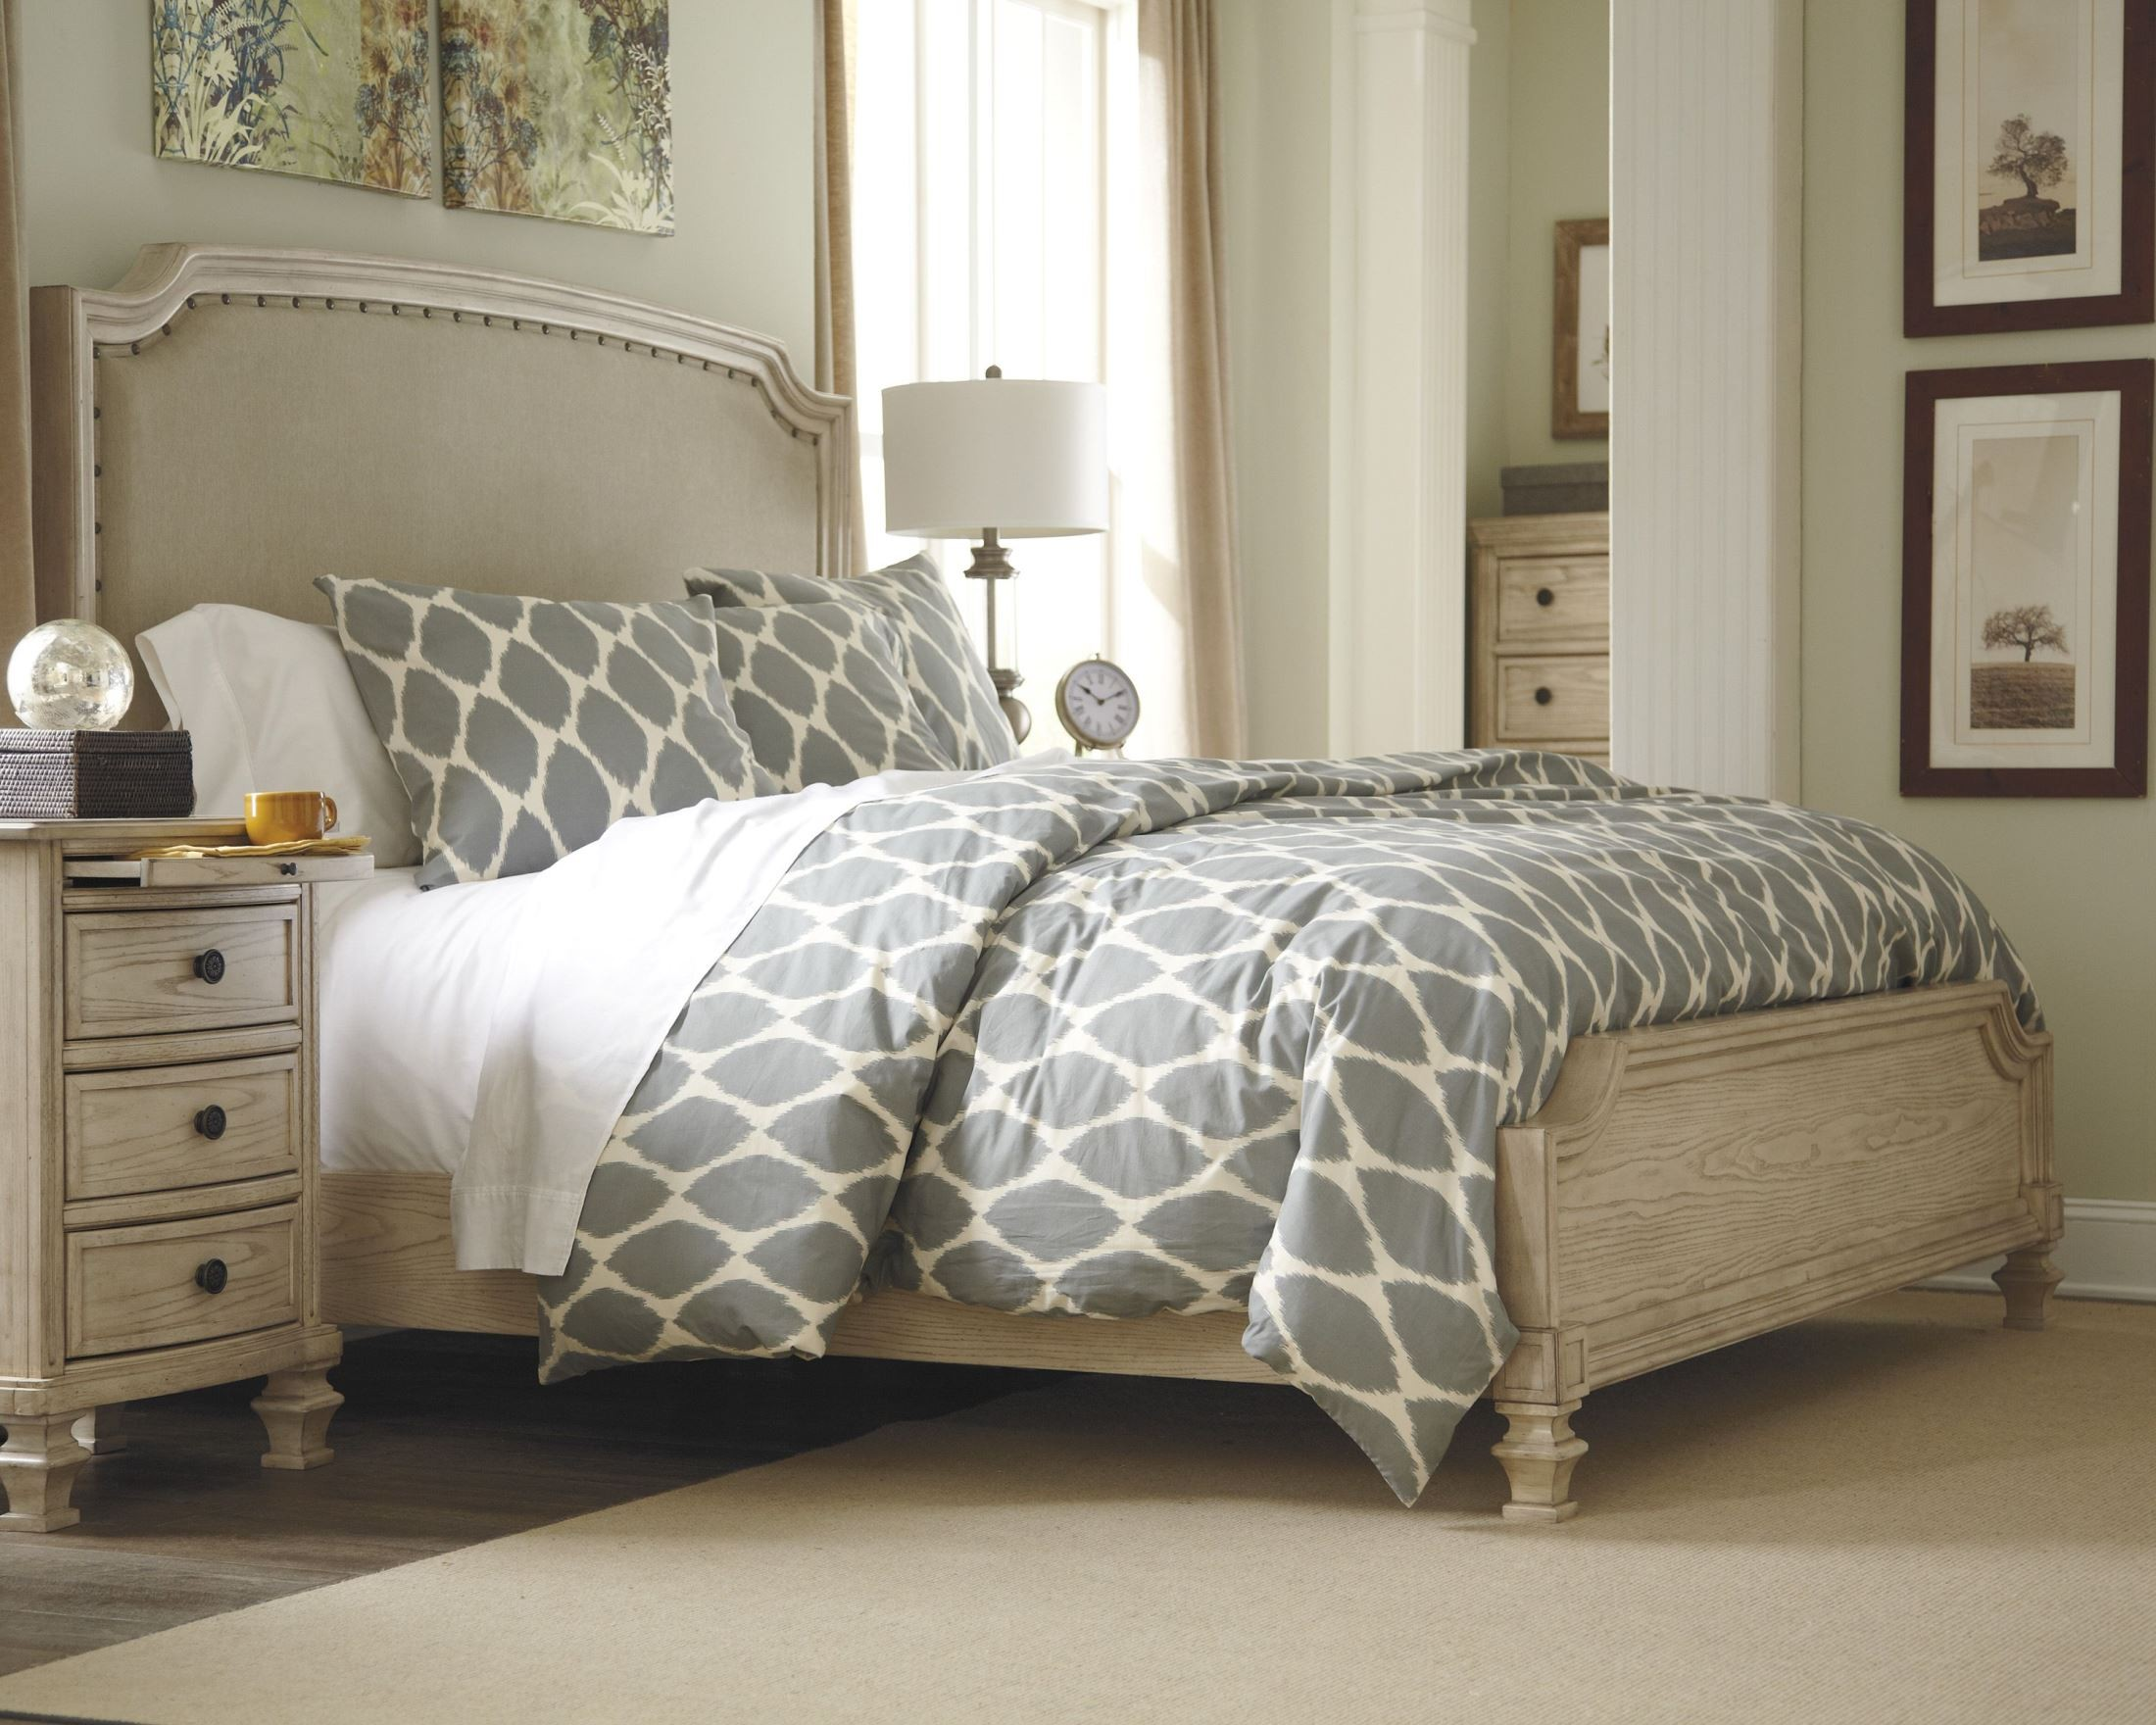 upholstered bedroom furniture demarlos upholstered panel bed from b693 77 13696